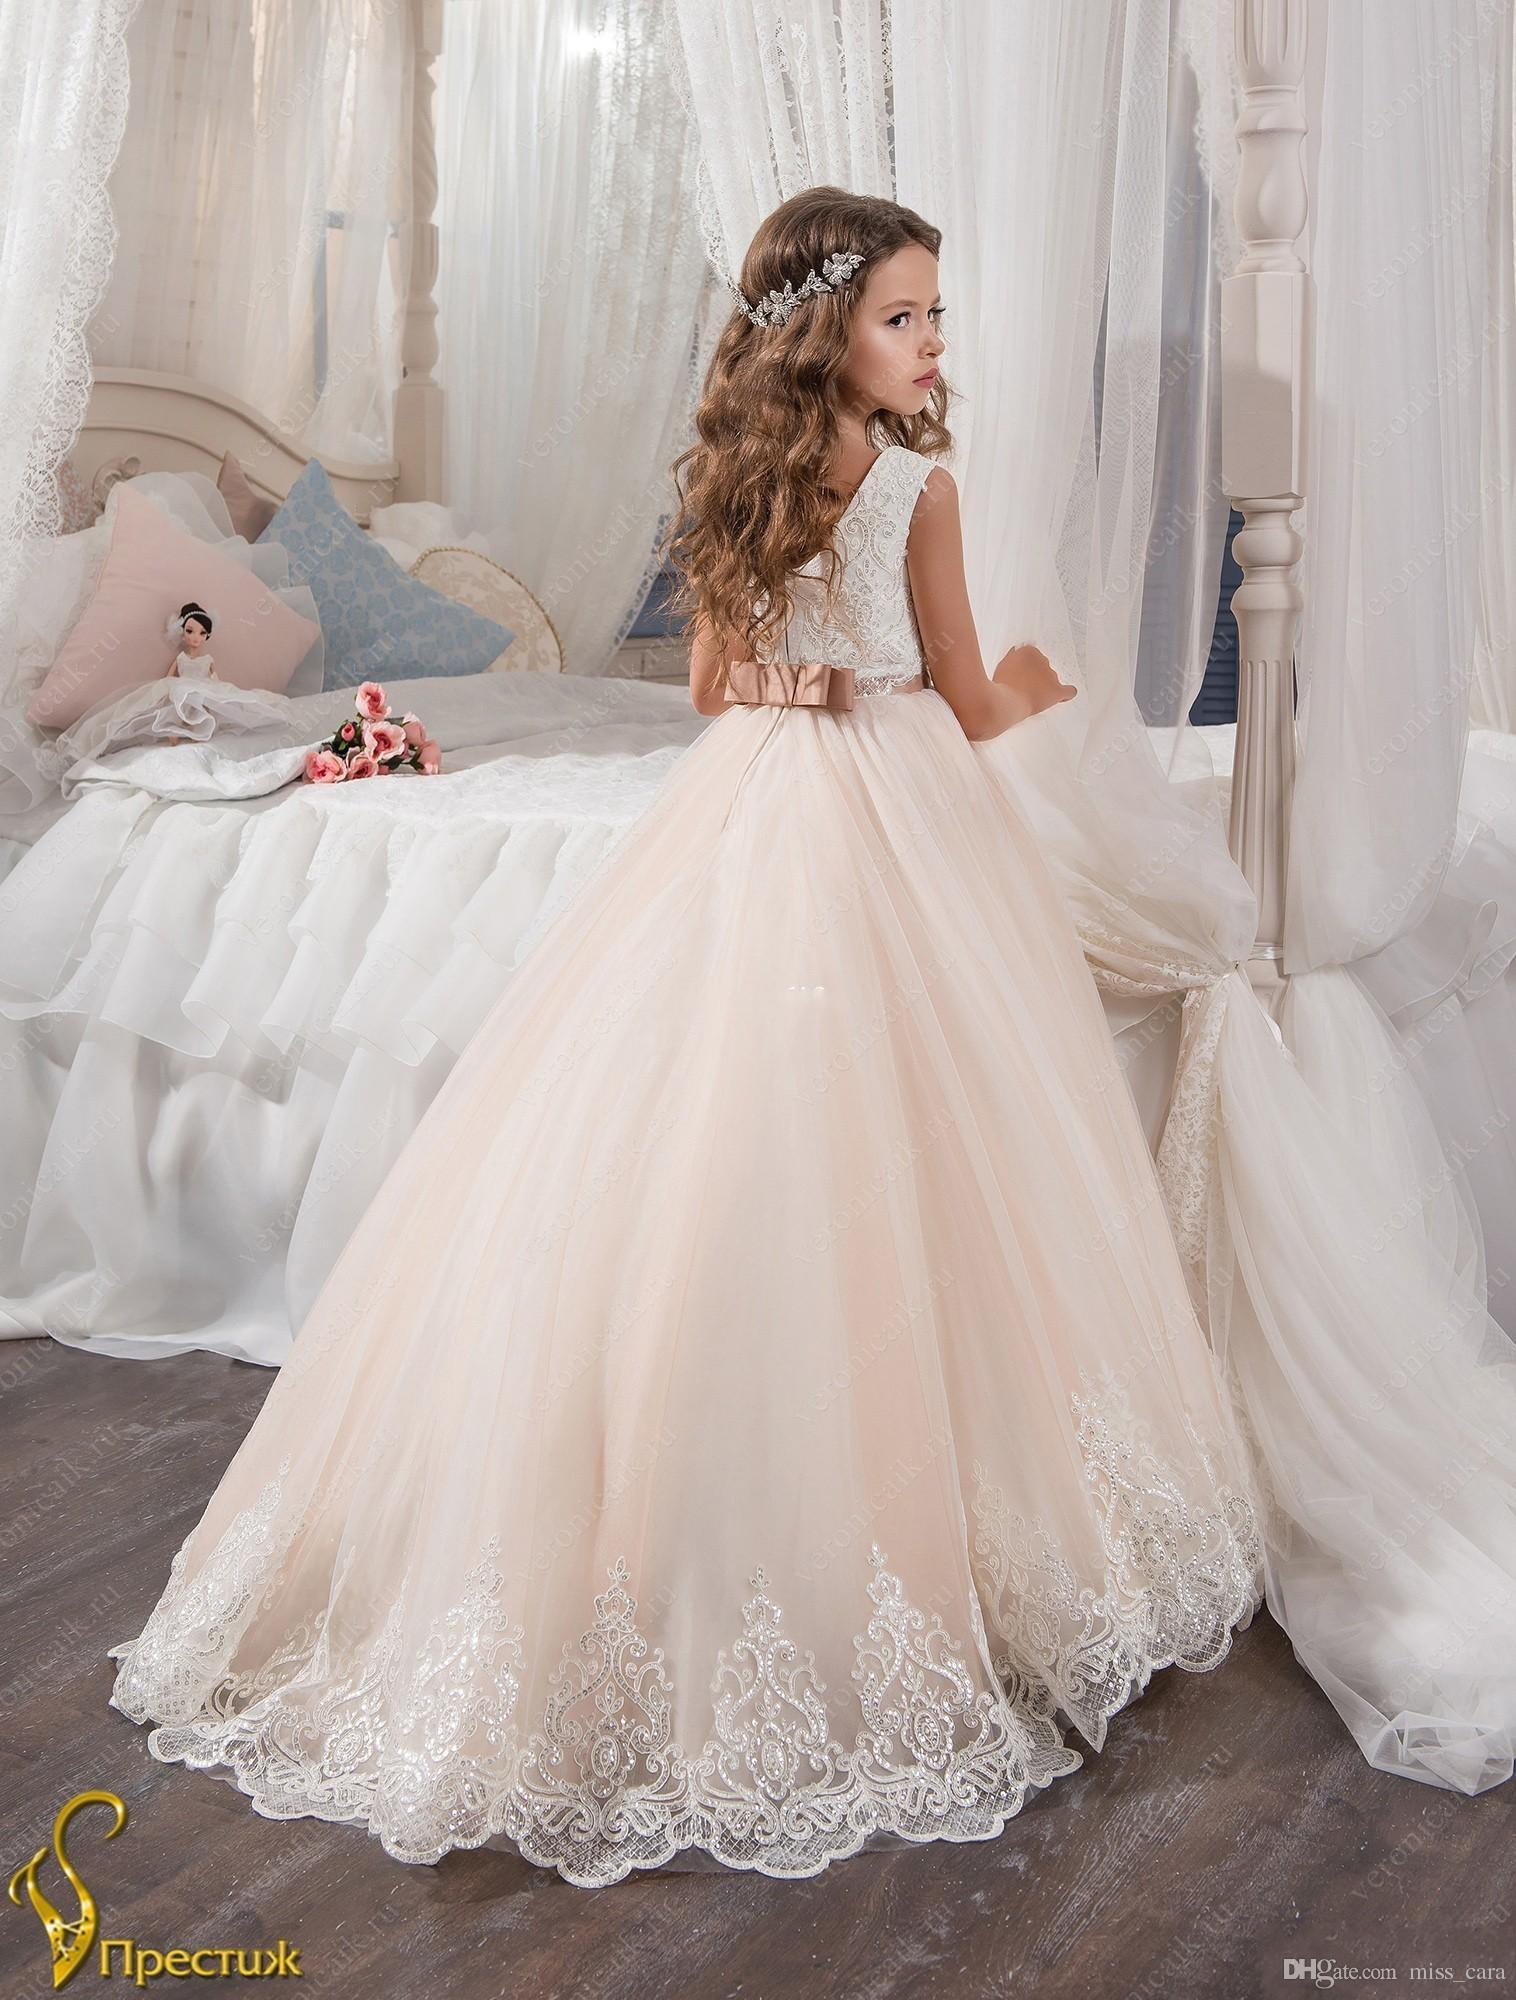 2017 Vintage Flower Girl Dresses for Wedding Blush Pink Princess Tutu Sequined Appliqued Lace Bow Child First Communion Dress Custom Made